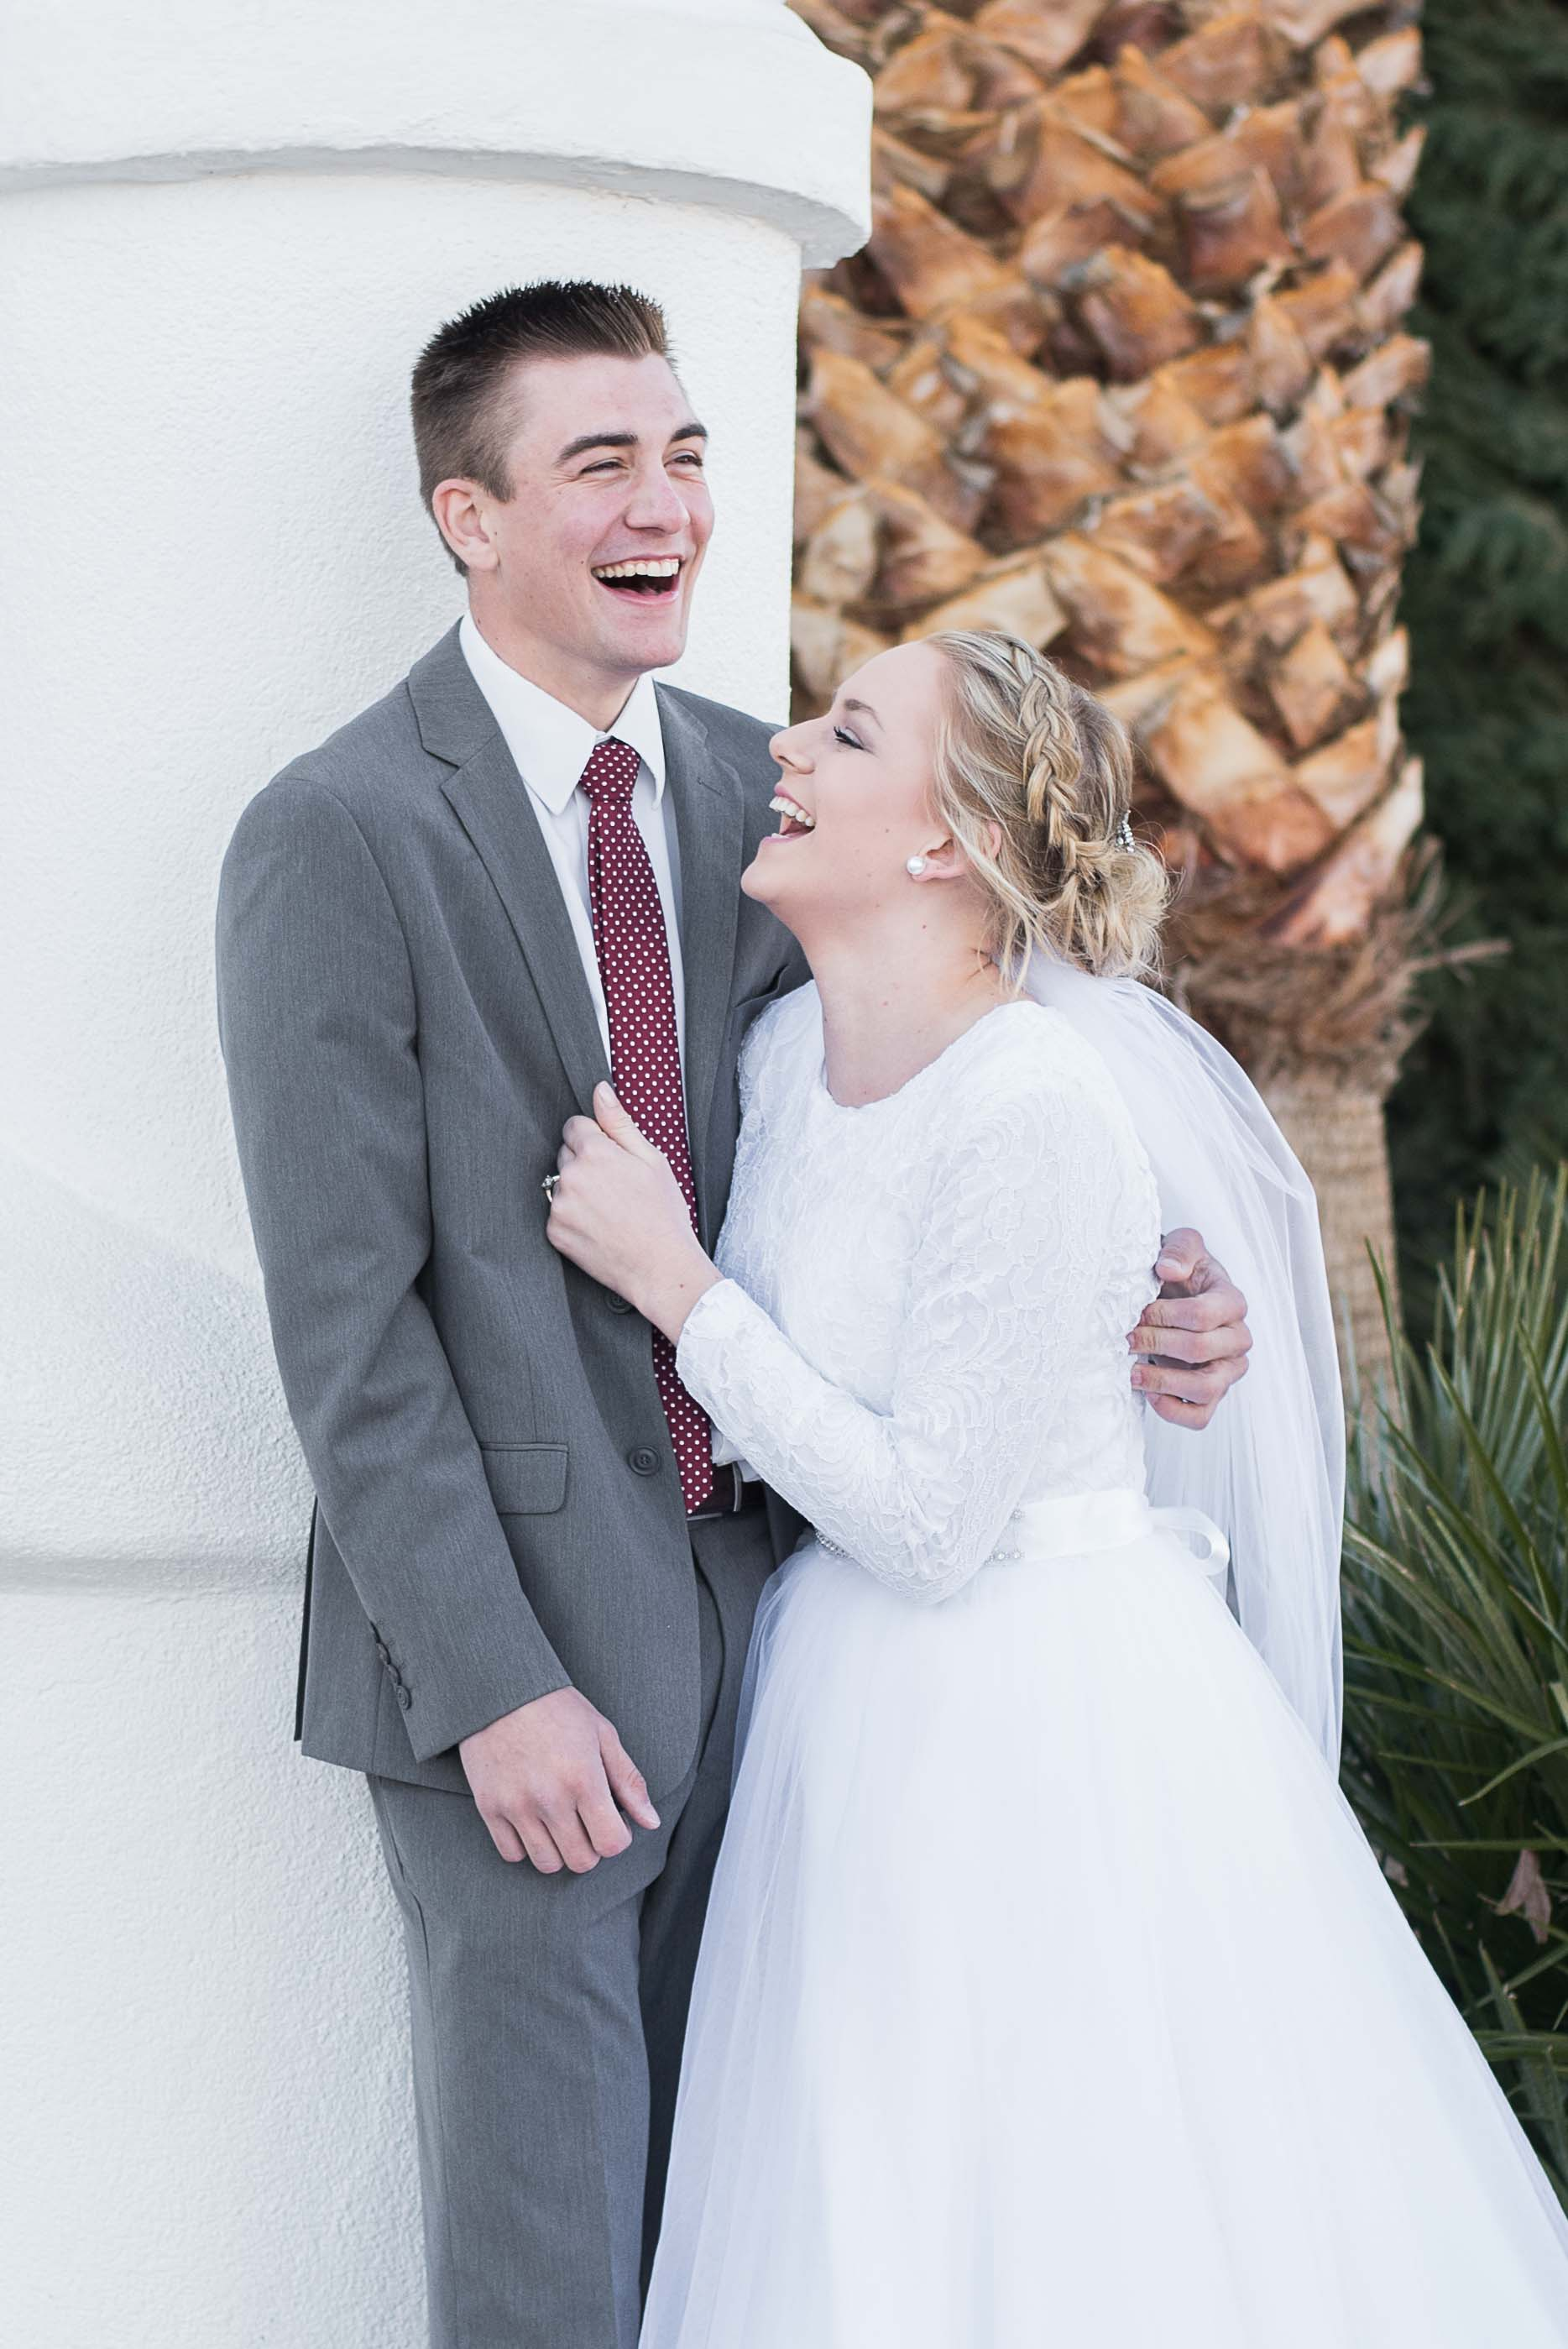 Braxton+Kaycee-BRIDALS-Sadie-Banks-Photography-75.jpg